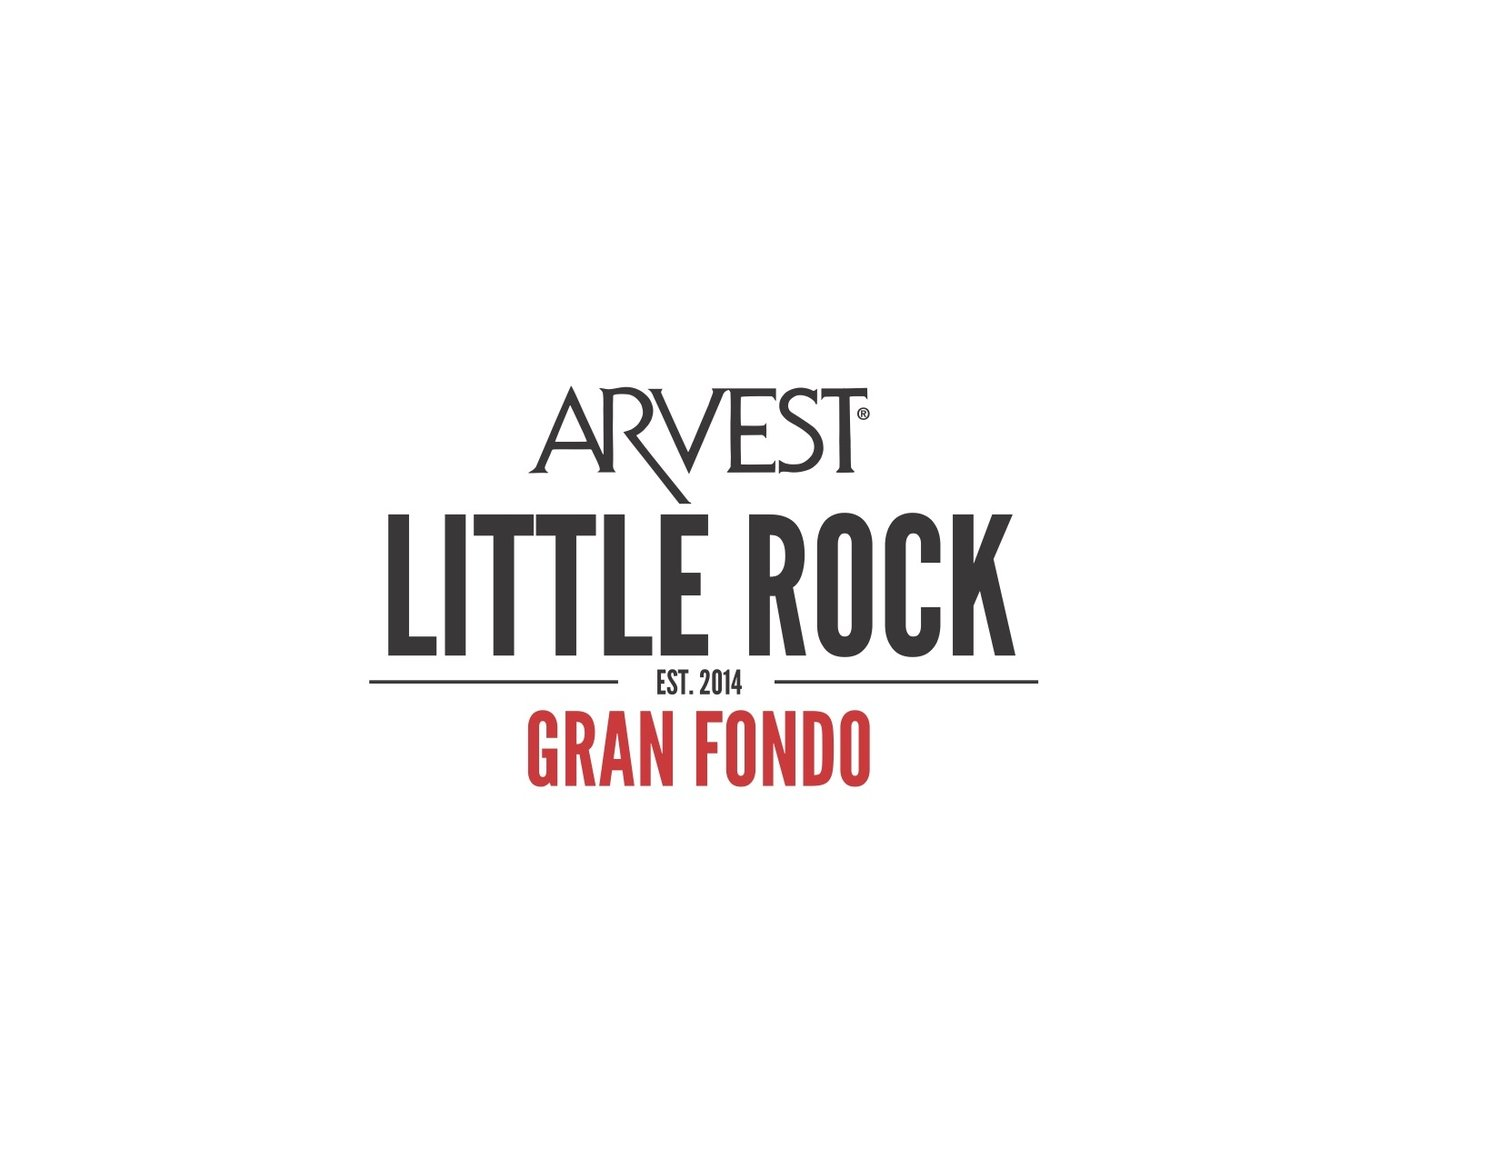 Arvest Little Rock Gran Fondo 2019